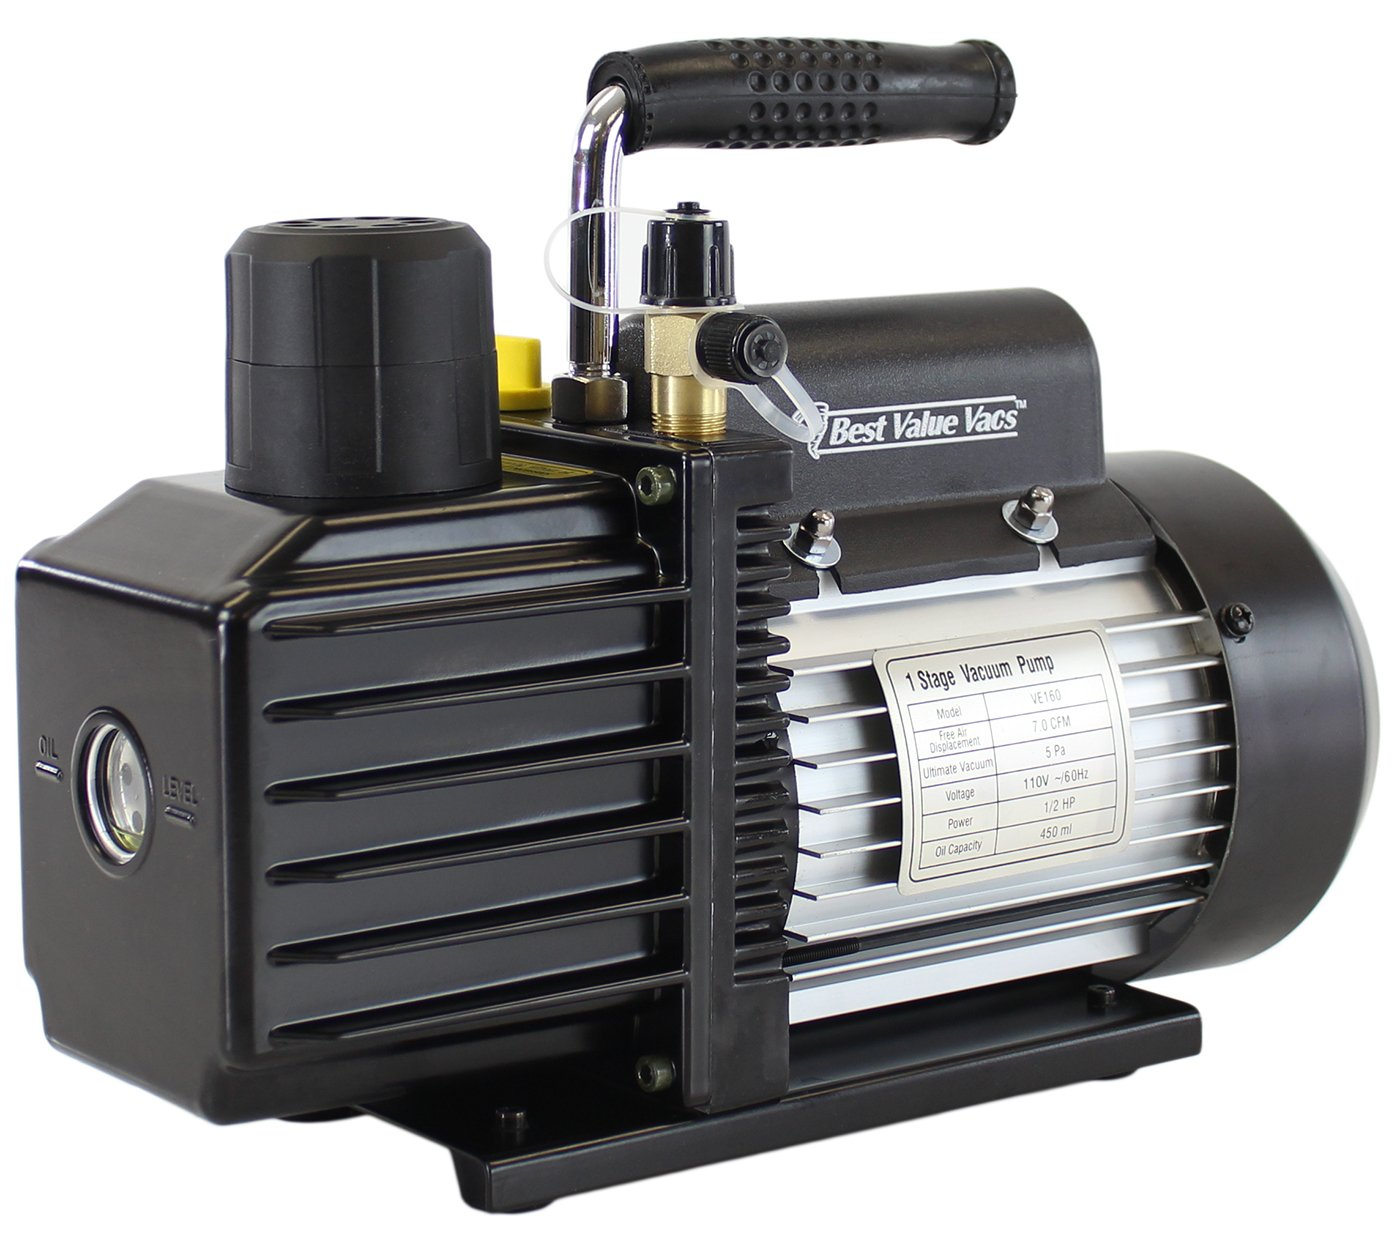 Best Value Vacs VE225 4CFM Two Stage Vacuum Pump